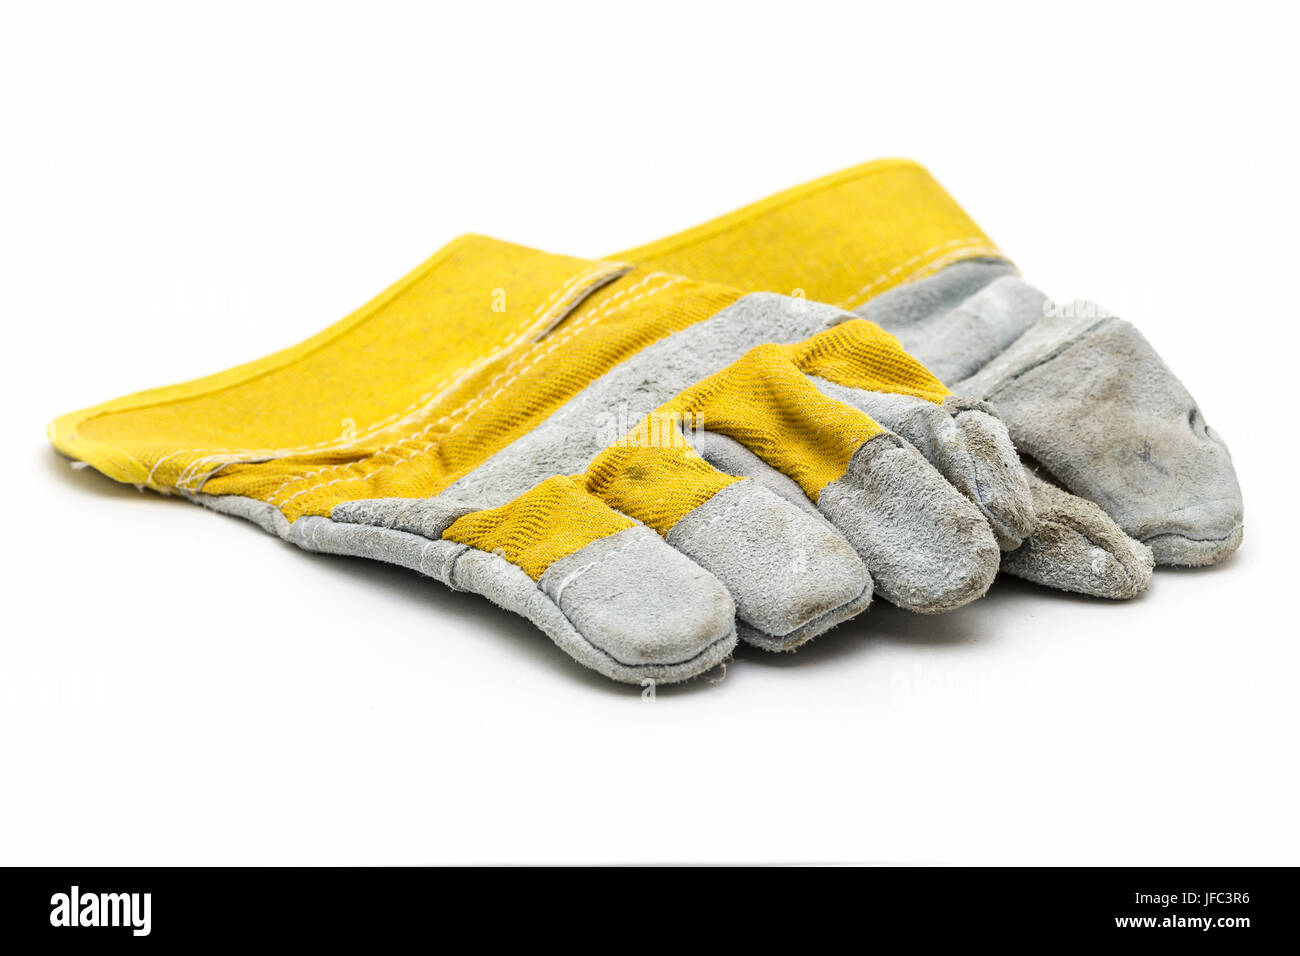 Suede construction gloves closeup on a white background. - Stock Image